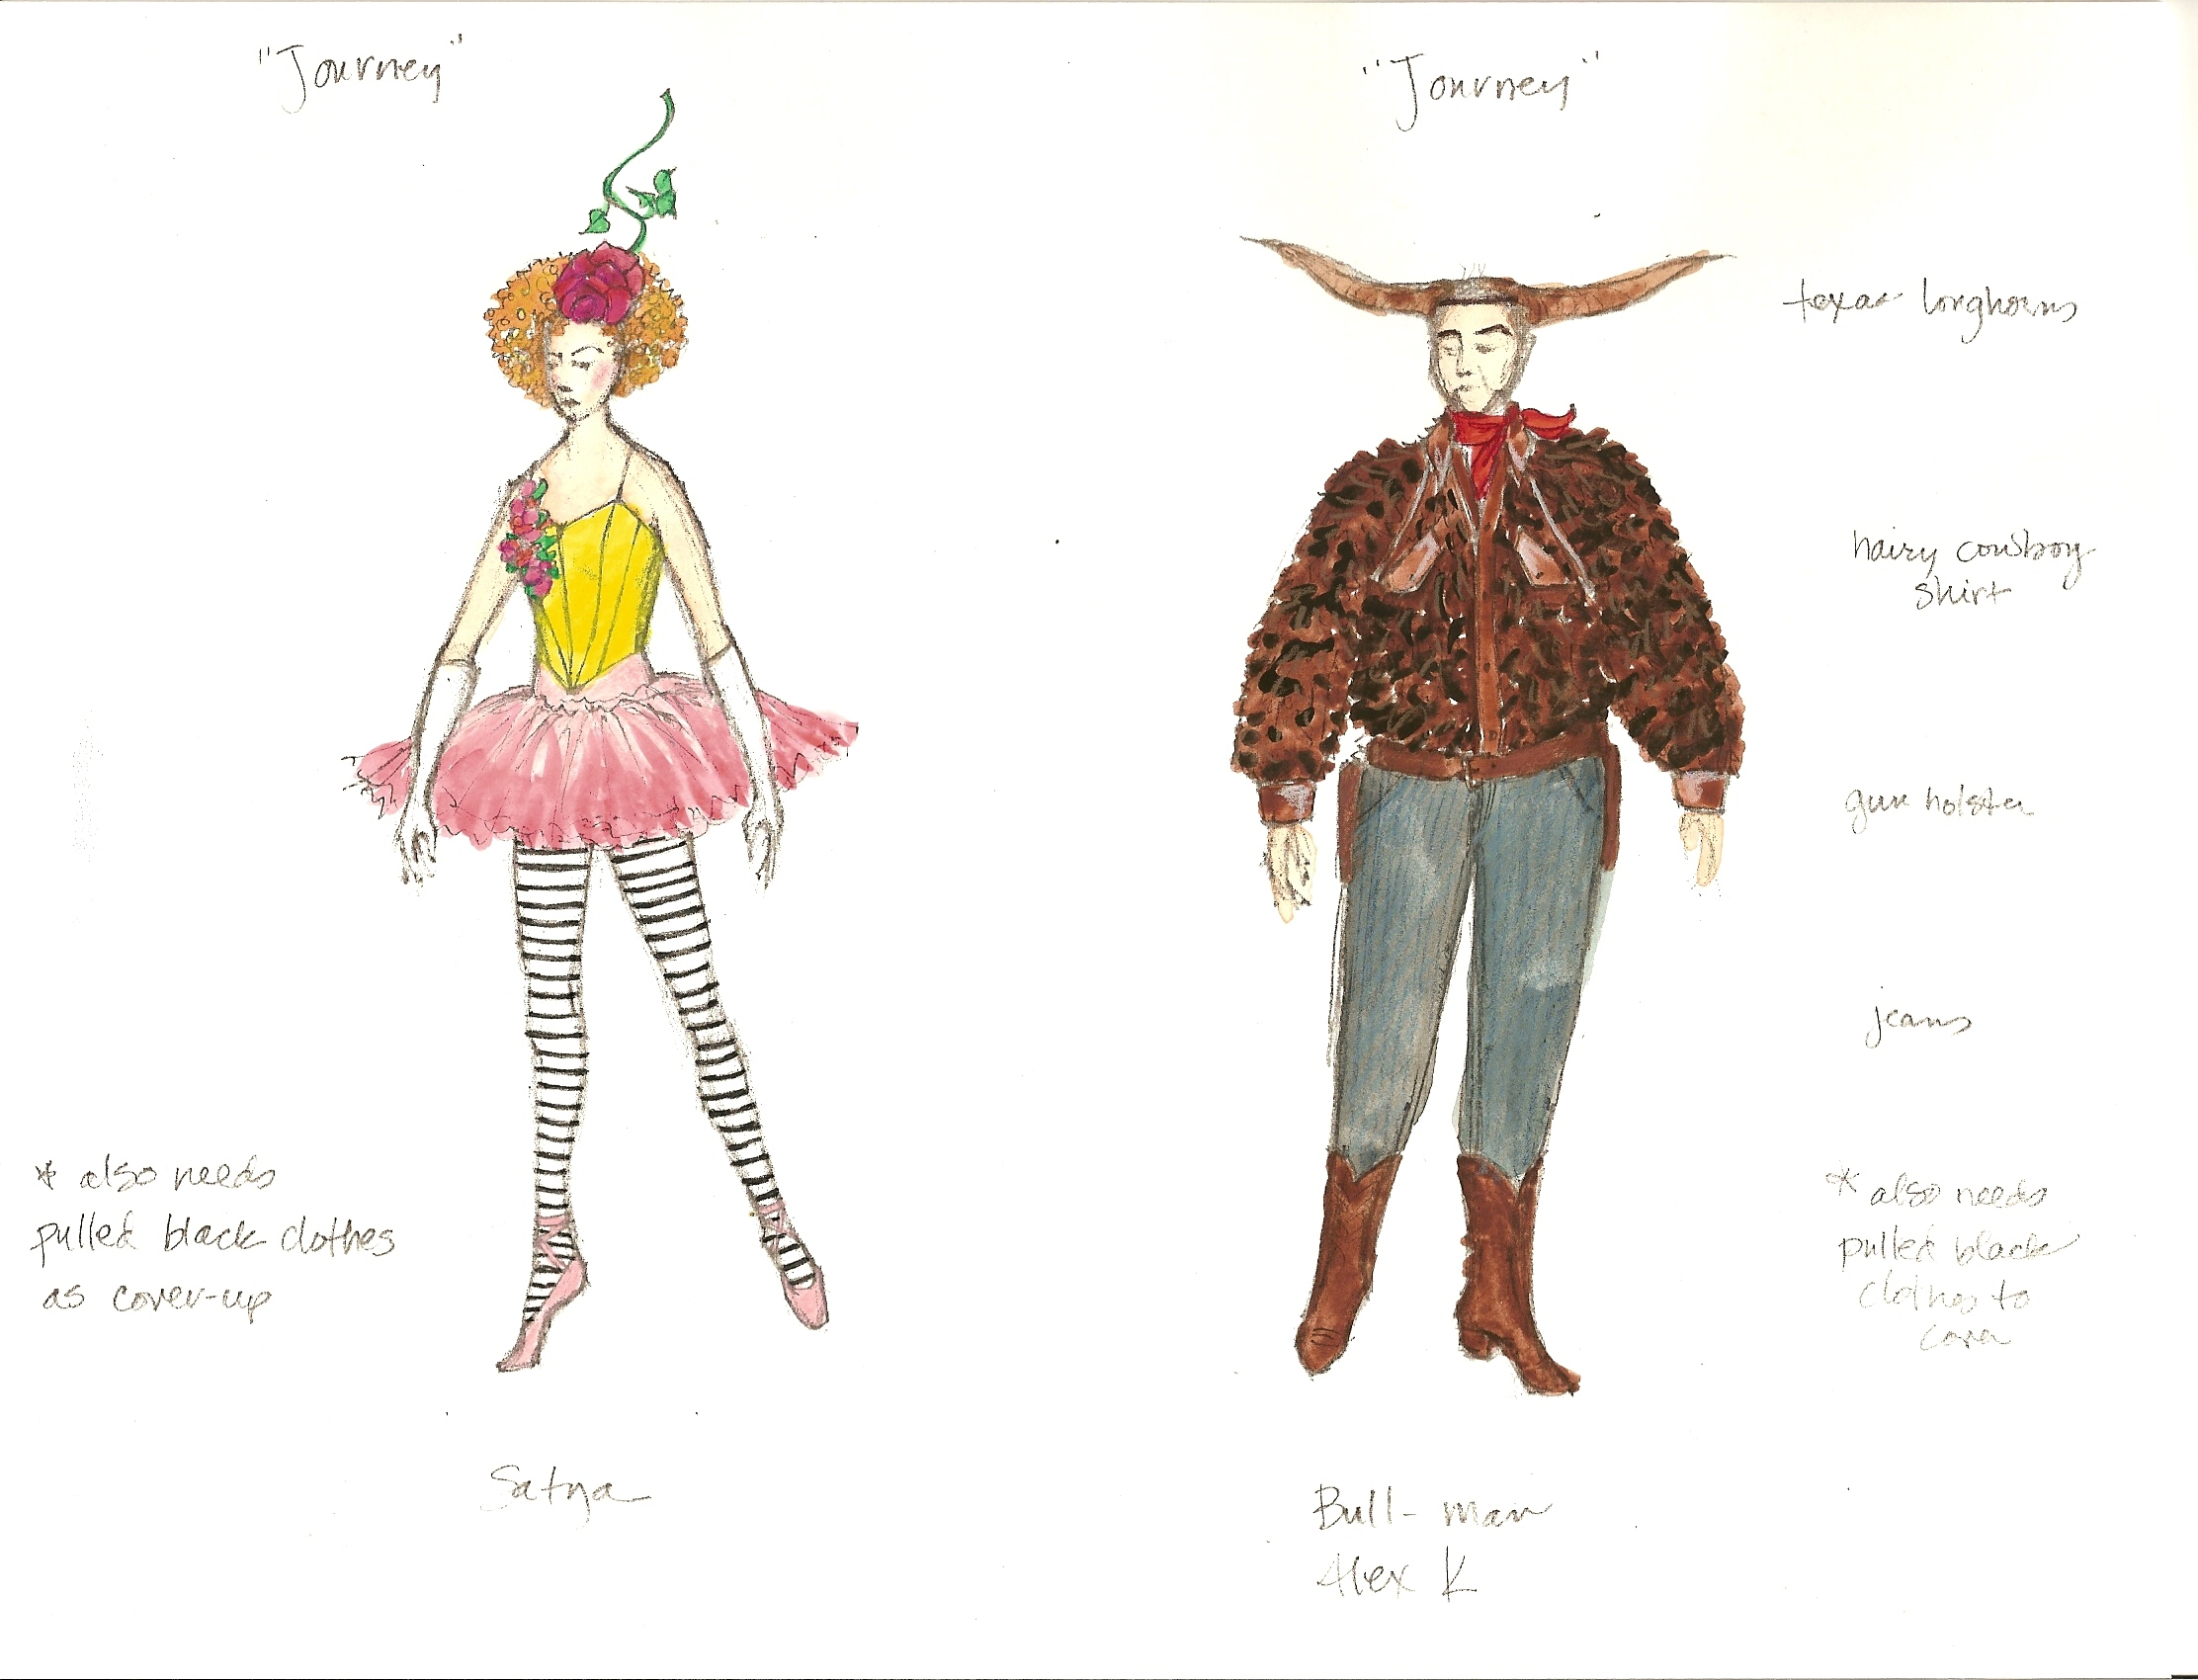 Ass Maduras dance costumes for competition - beginner dance